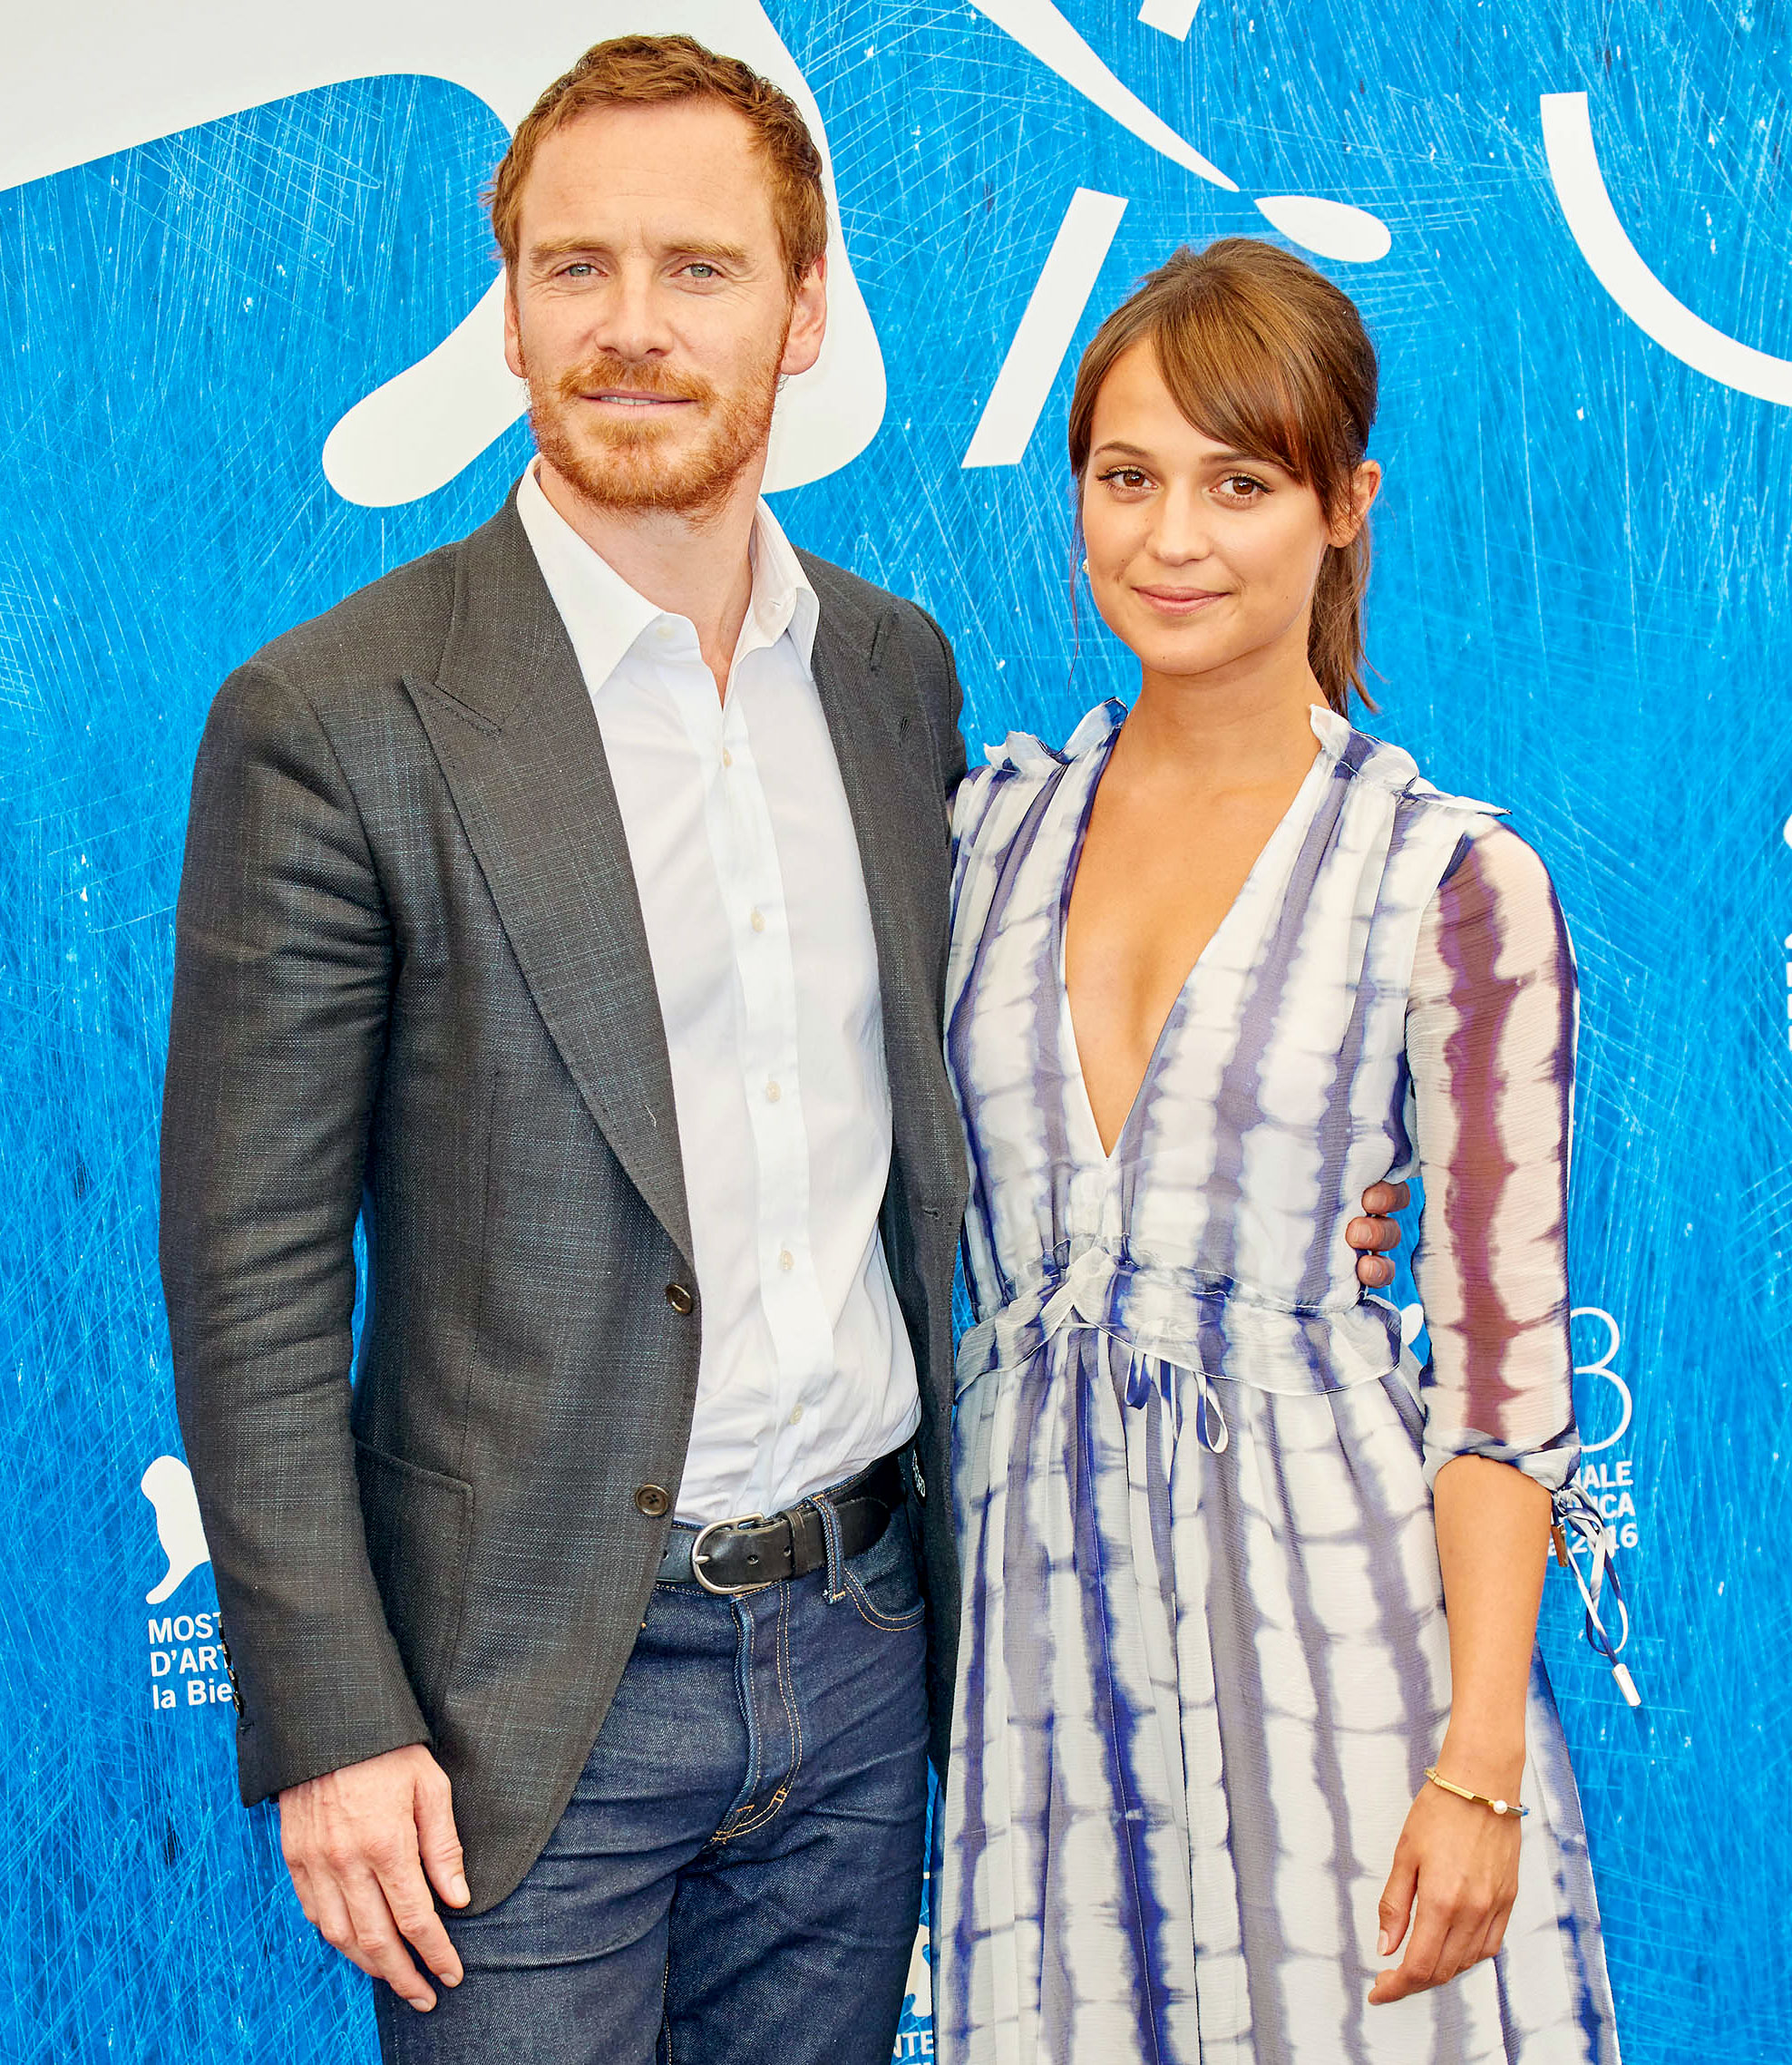 Alicia Vikander Is Pregnant With Her and Michael Fassbender First Child